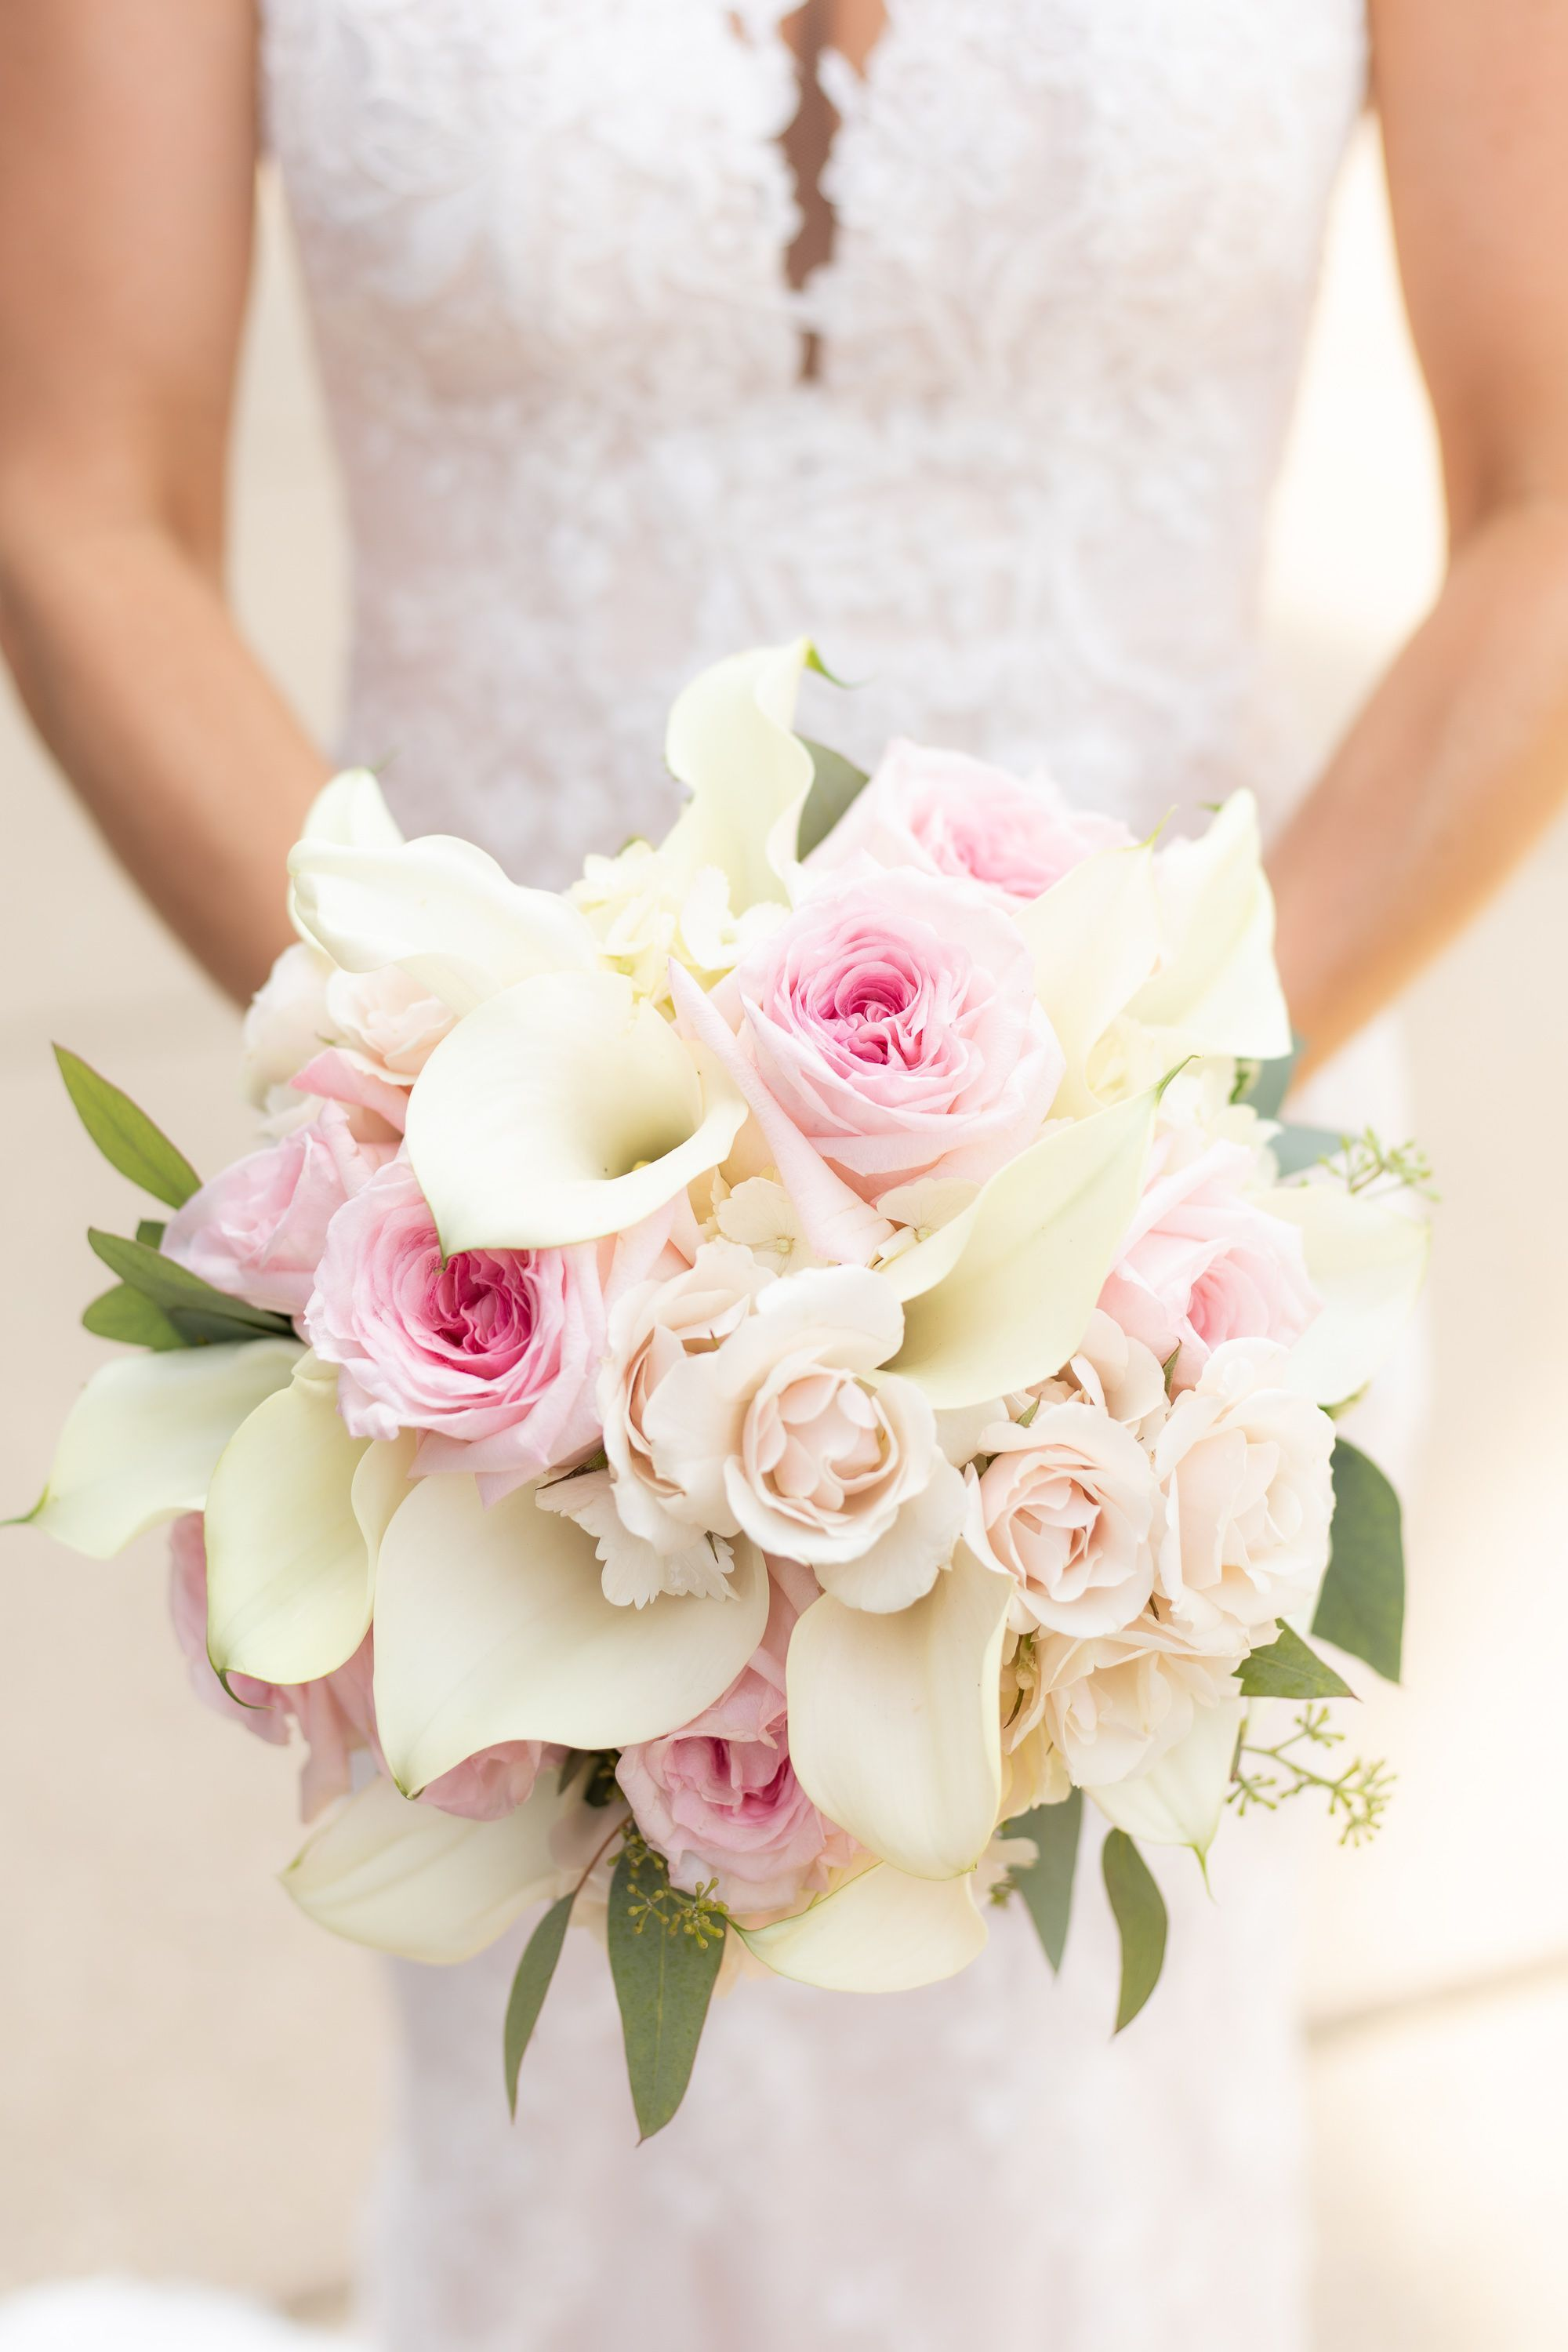 Rose Calla Lily Wedding Bouquet in 2020 Lily bouquet